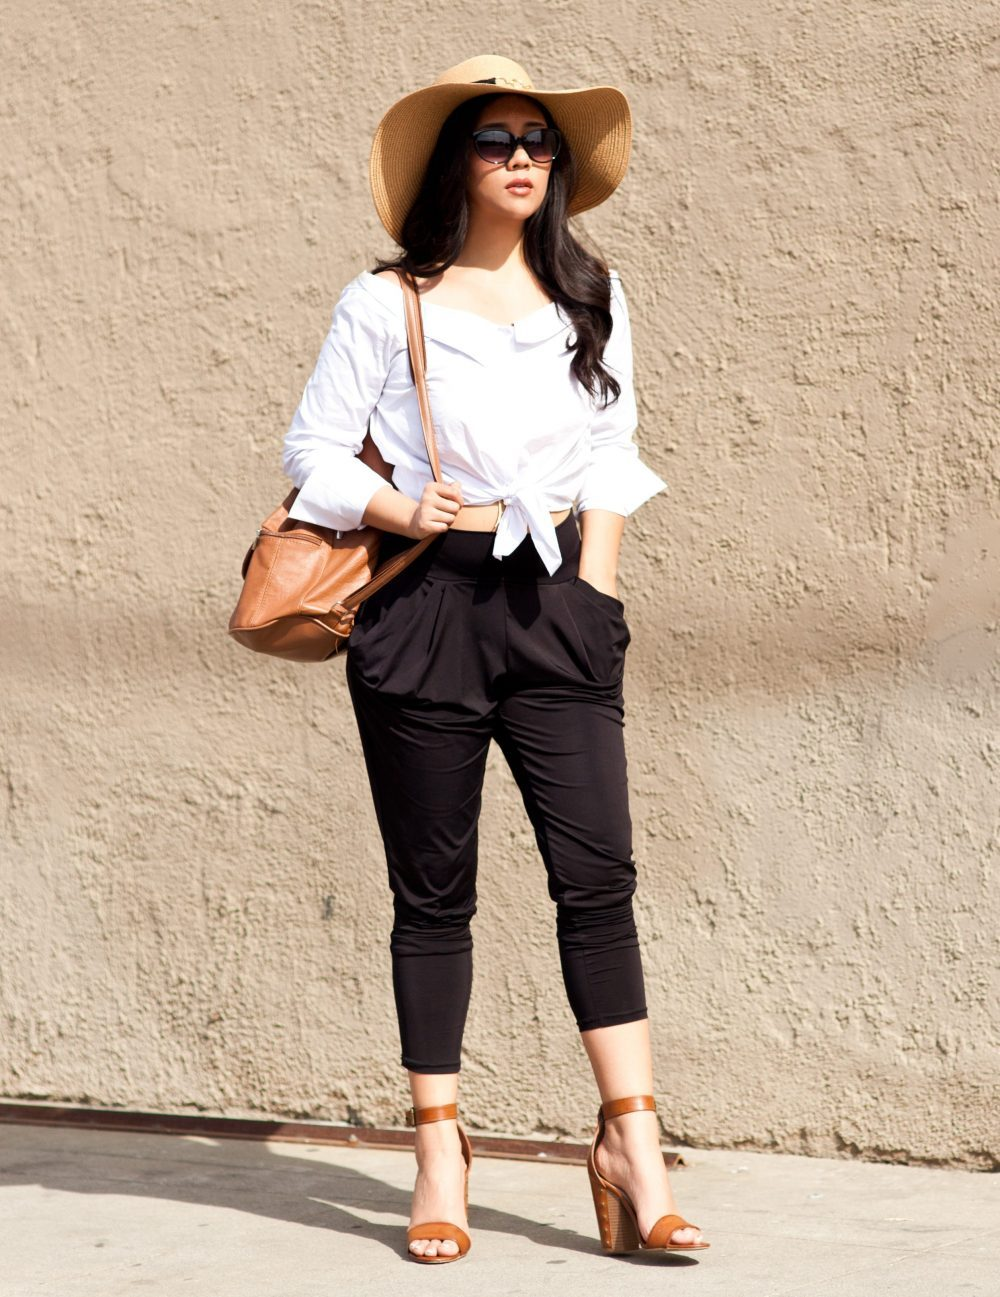 Shop the look- Hat: $11.99, Blouse: $19.00, Pants: $11.13, Backpack: $21.00, Shoes: $16.76 - www.theballeronabudget.com